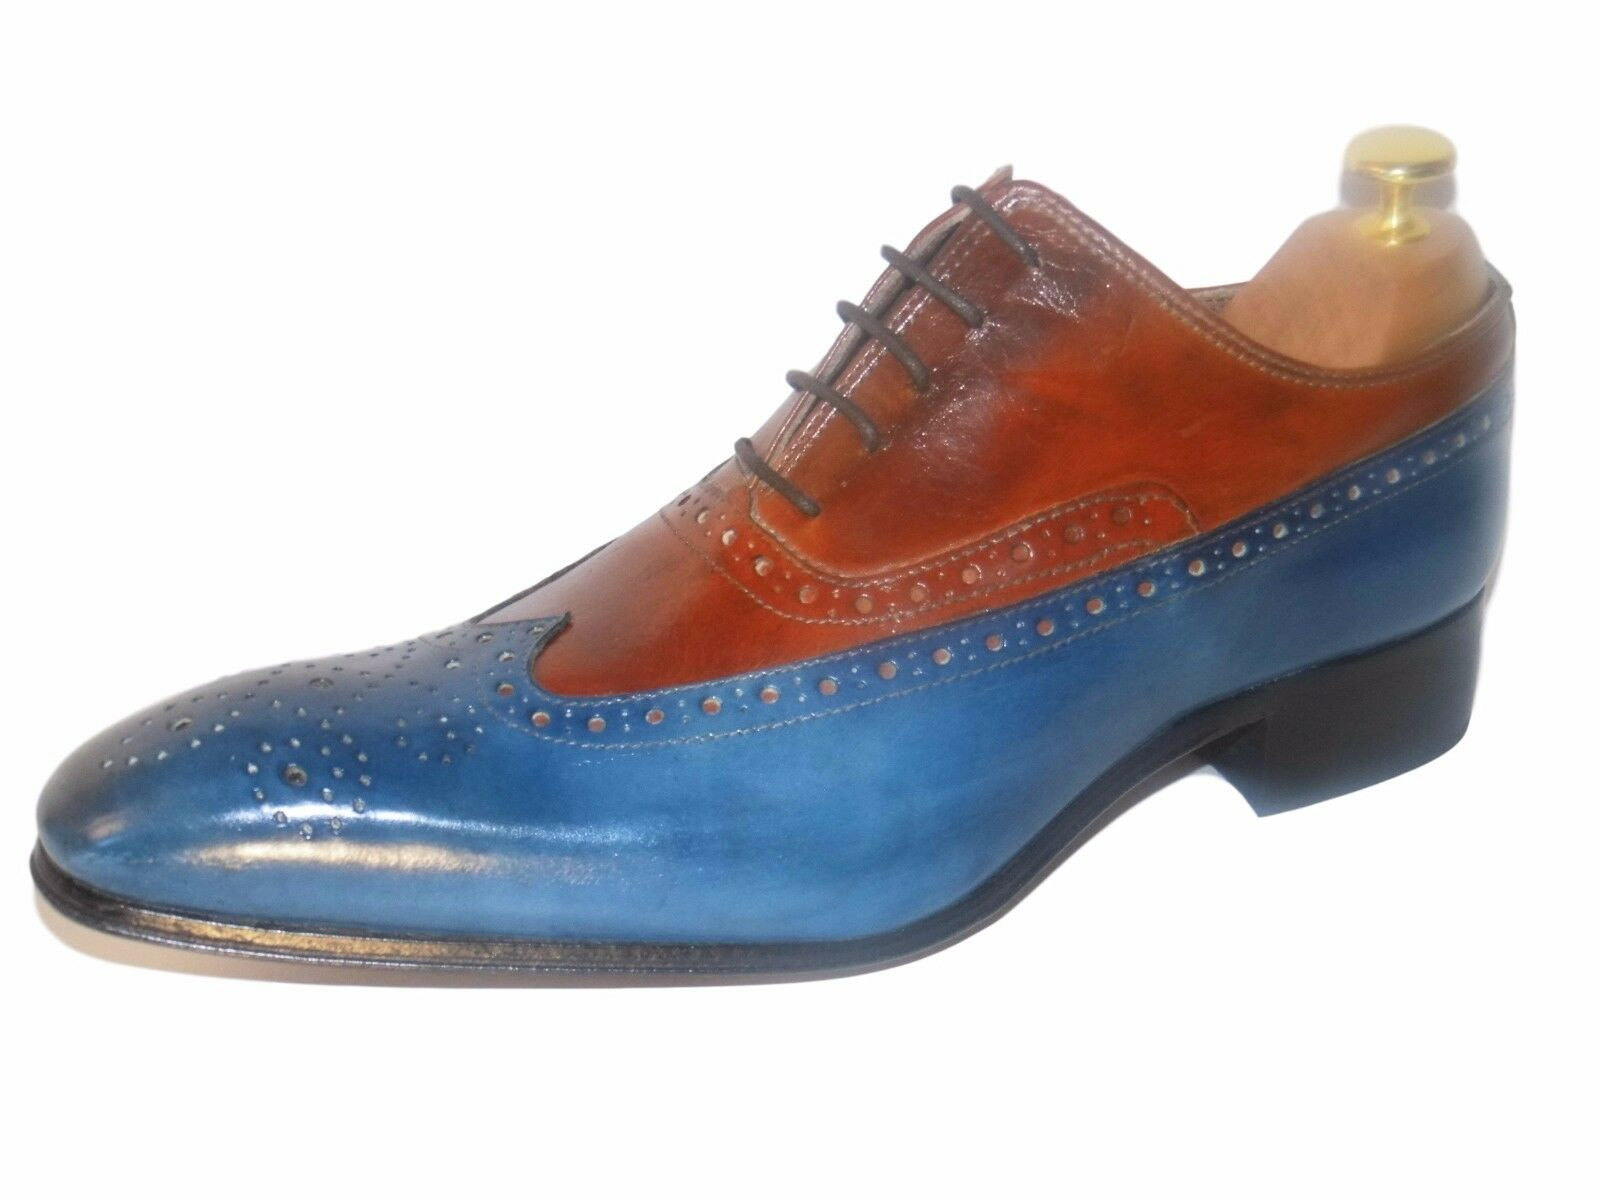 CHAUSSURE ITALIENNE LUXE HOMME CUIR NEUF BI-COLOR brown ET blue COUSU MAIN